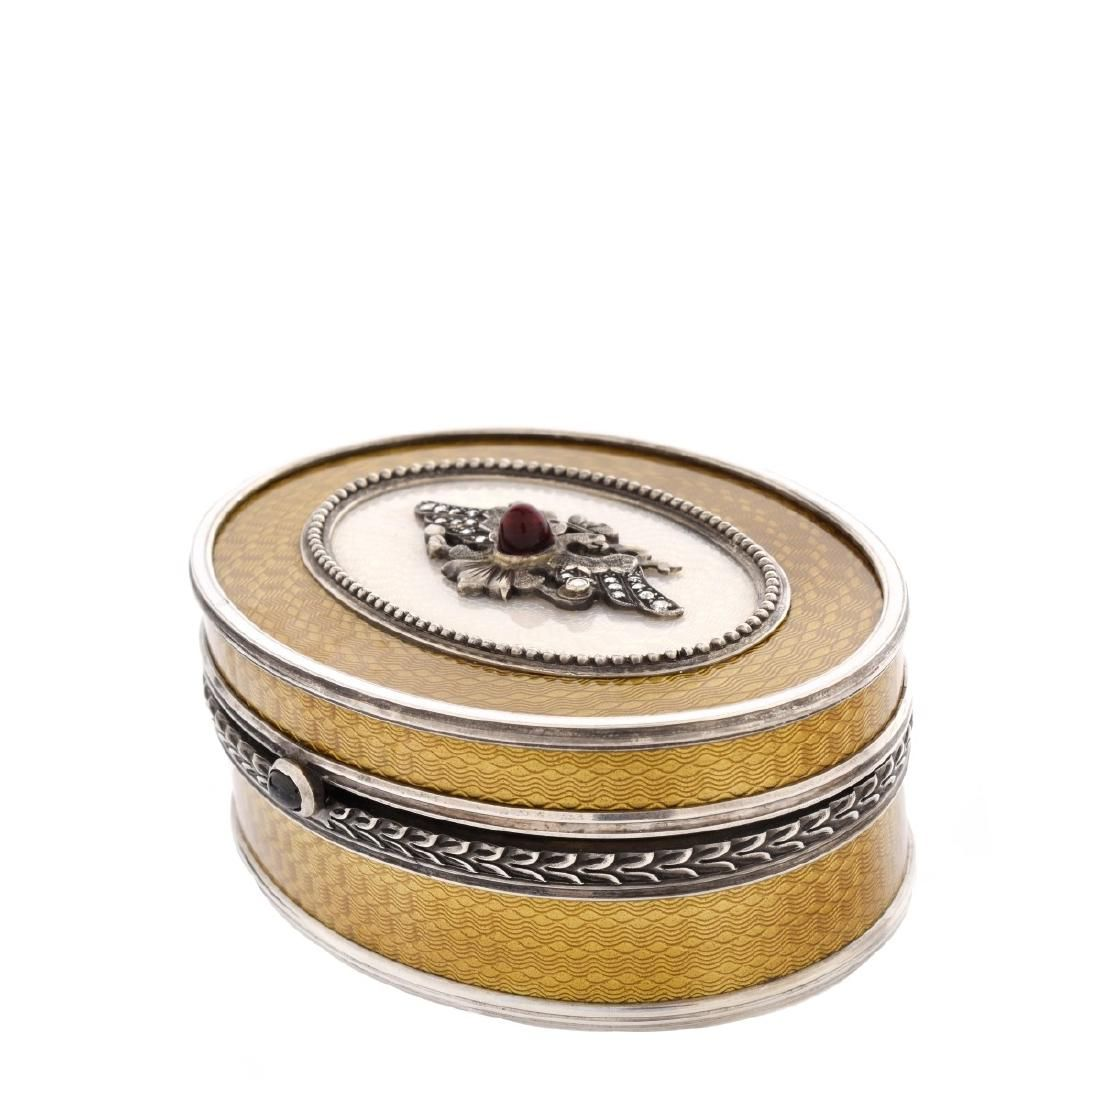 Russian Faberge Silver and Enamel Box